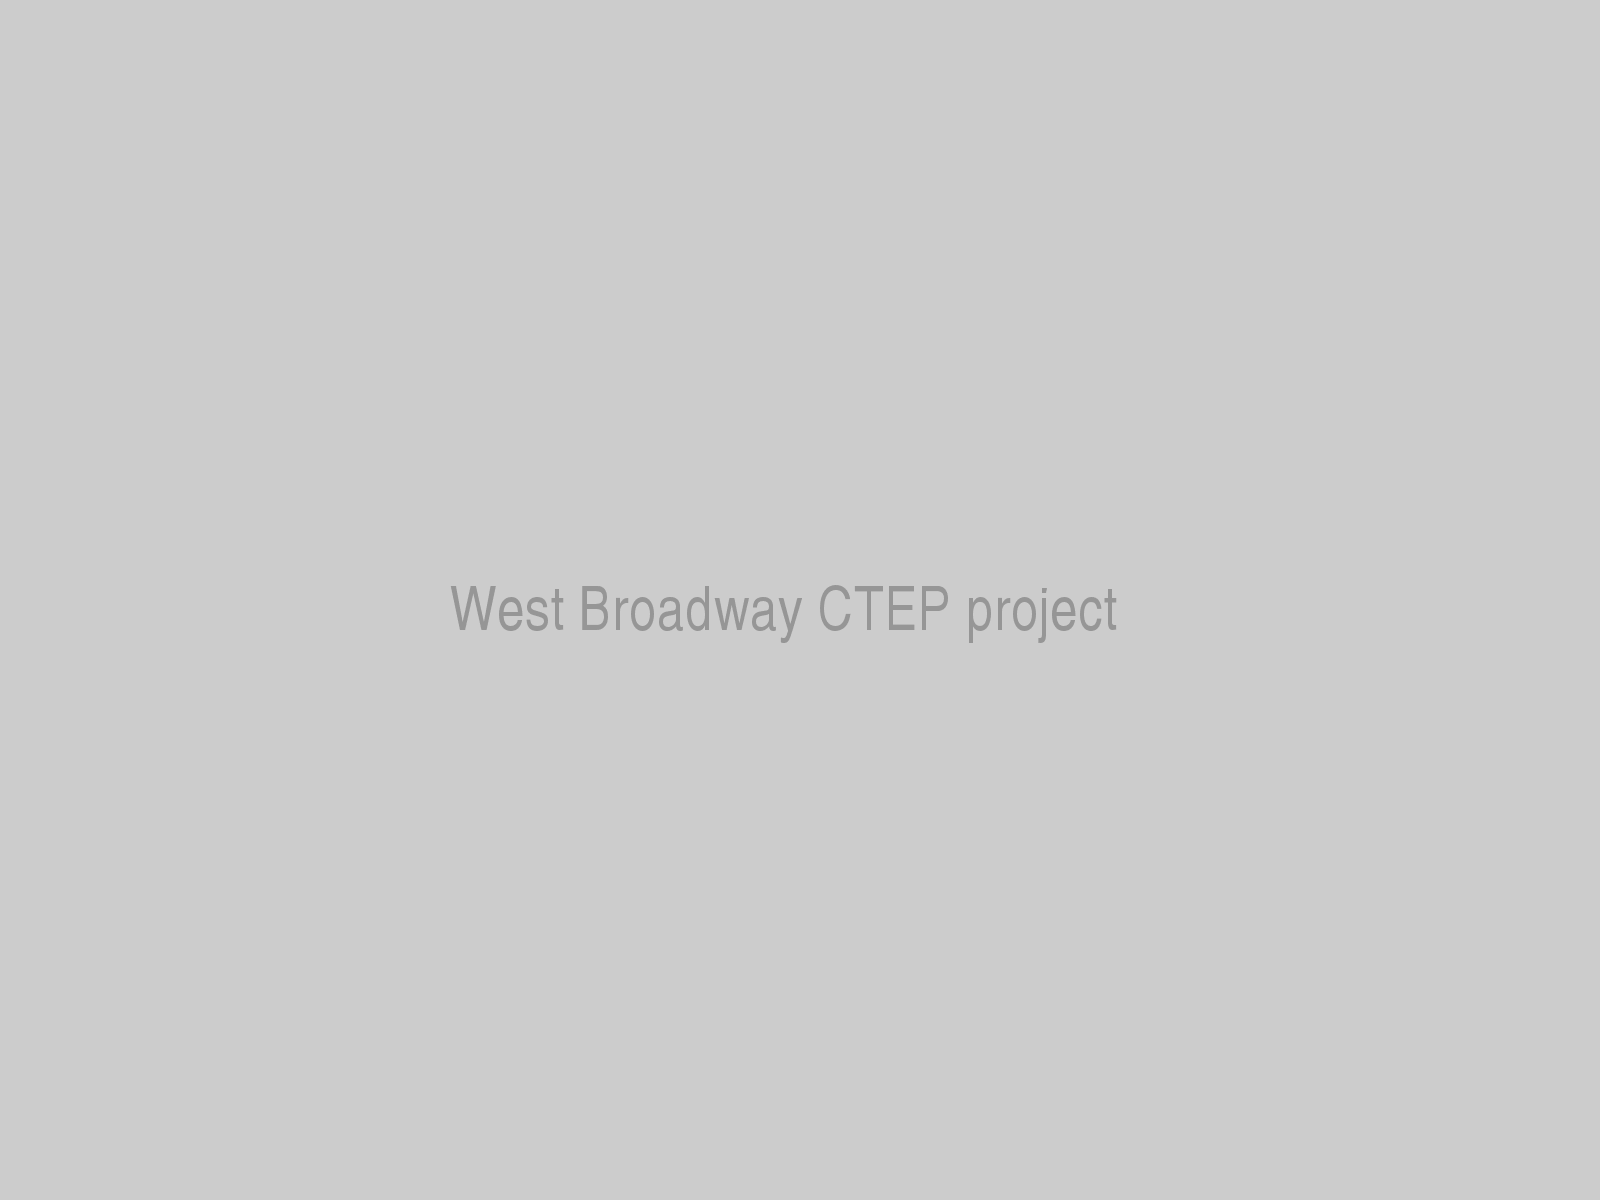 West Broadway CTEP project